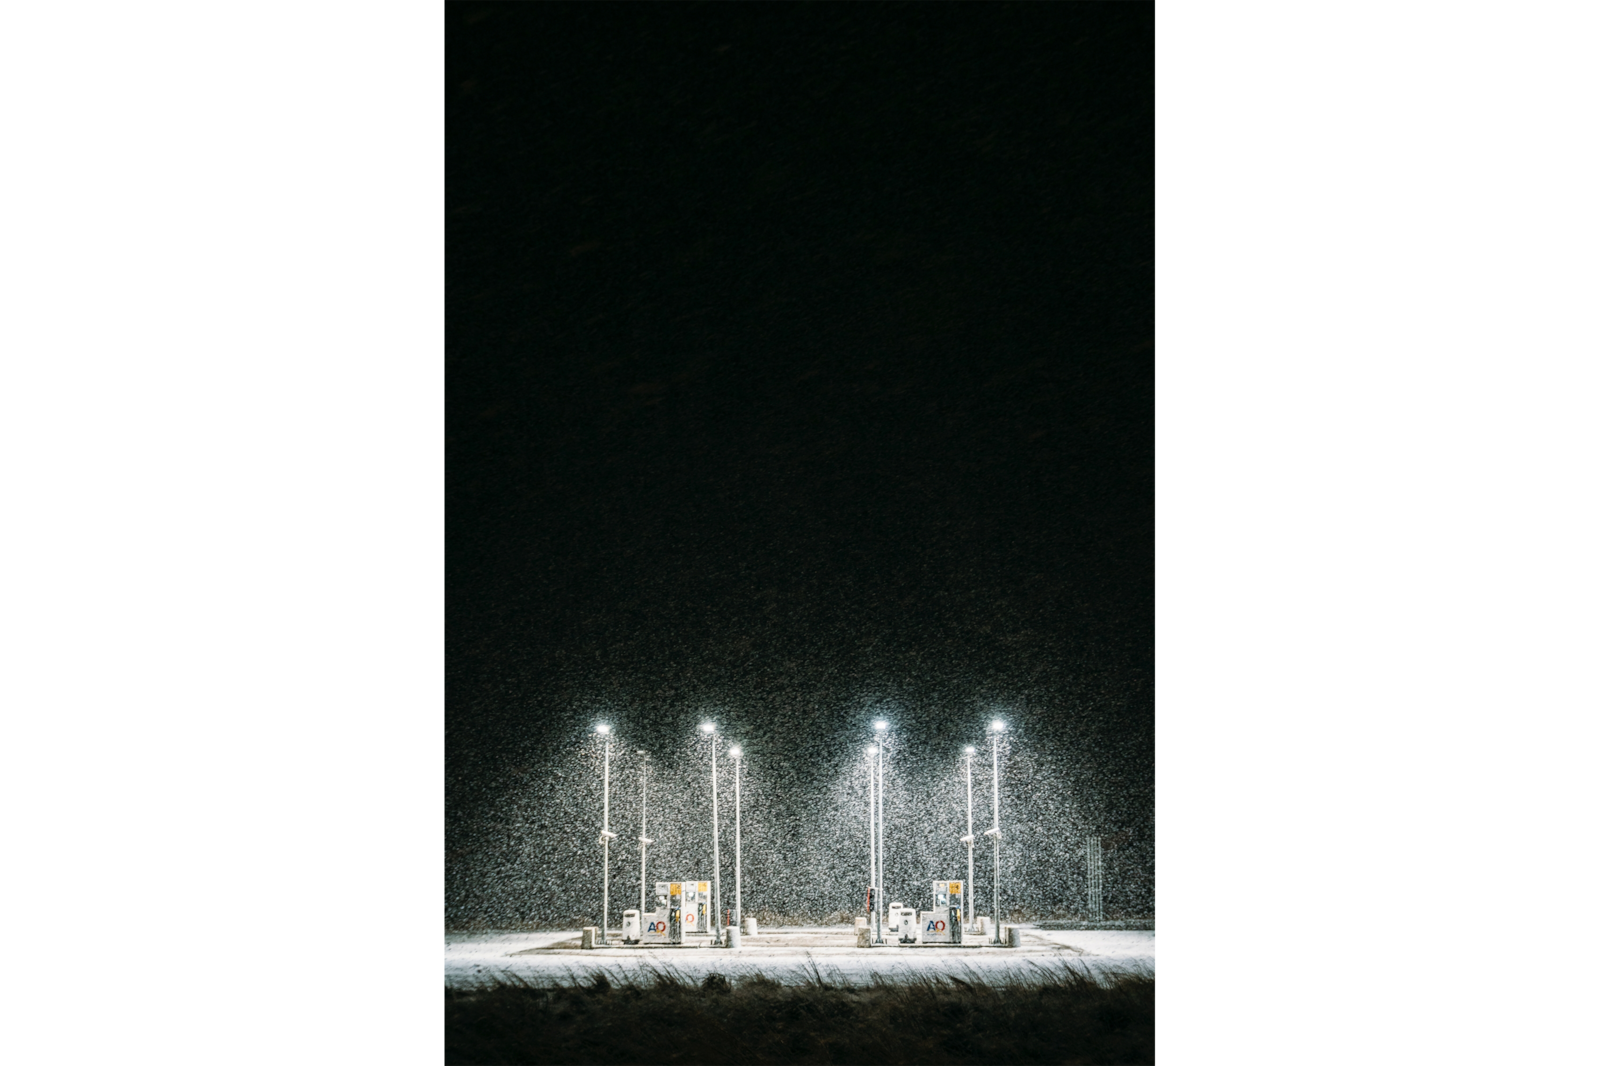 snow falling on petrol station alpha 7RII